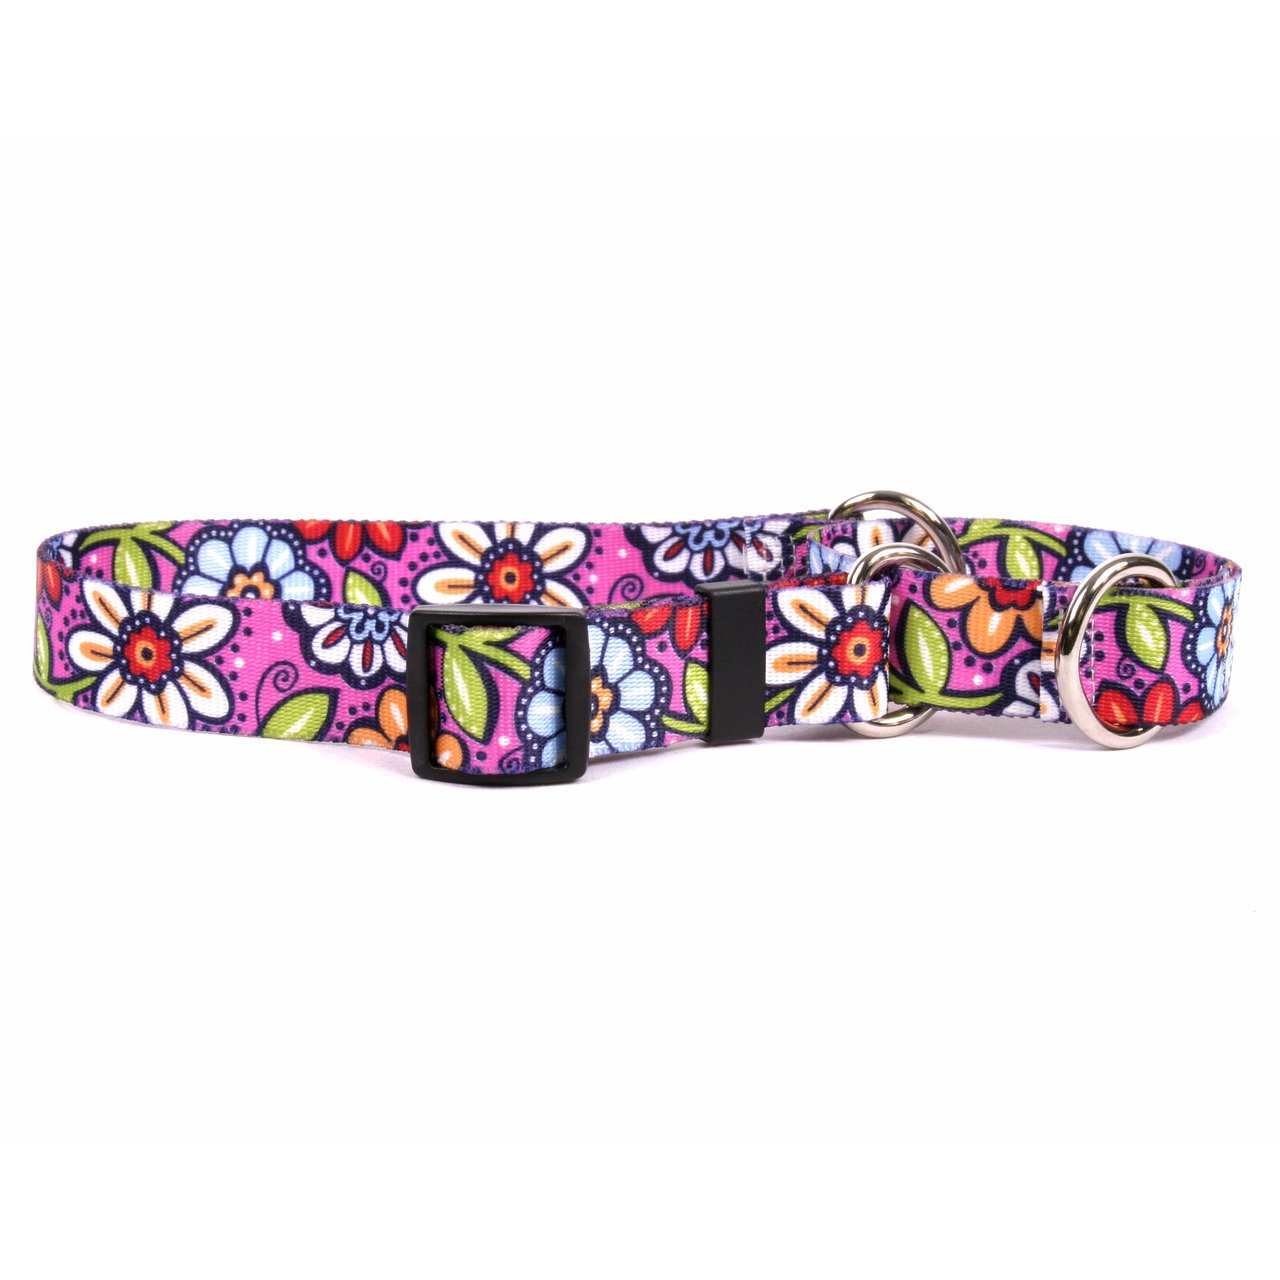 Yellow Dog Design Pink Garden Martingale Dog Collar, Medium-1'' Wide and fits neck sizes 14 to 20''